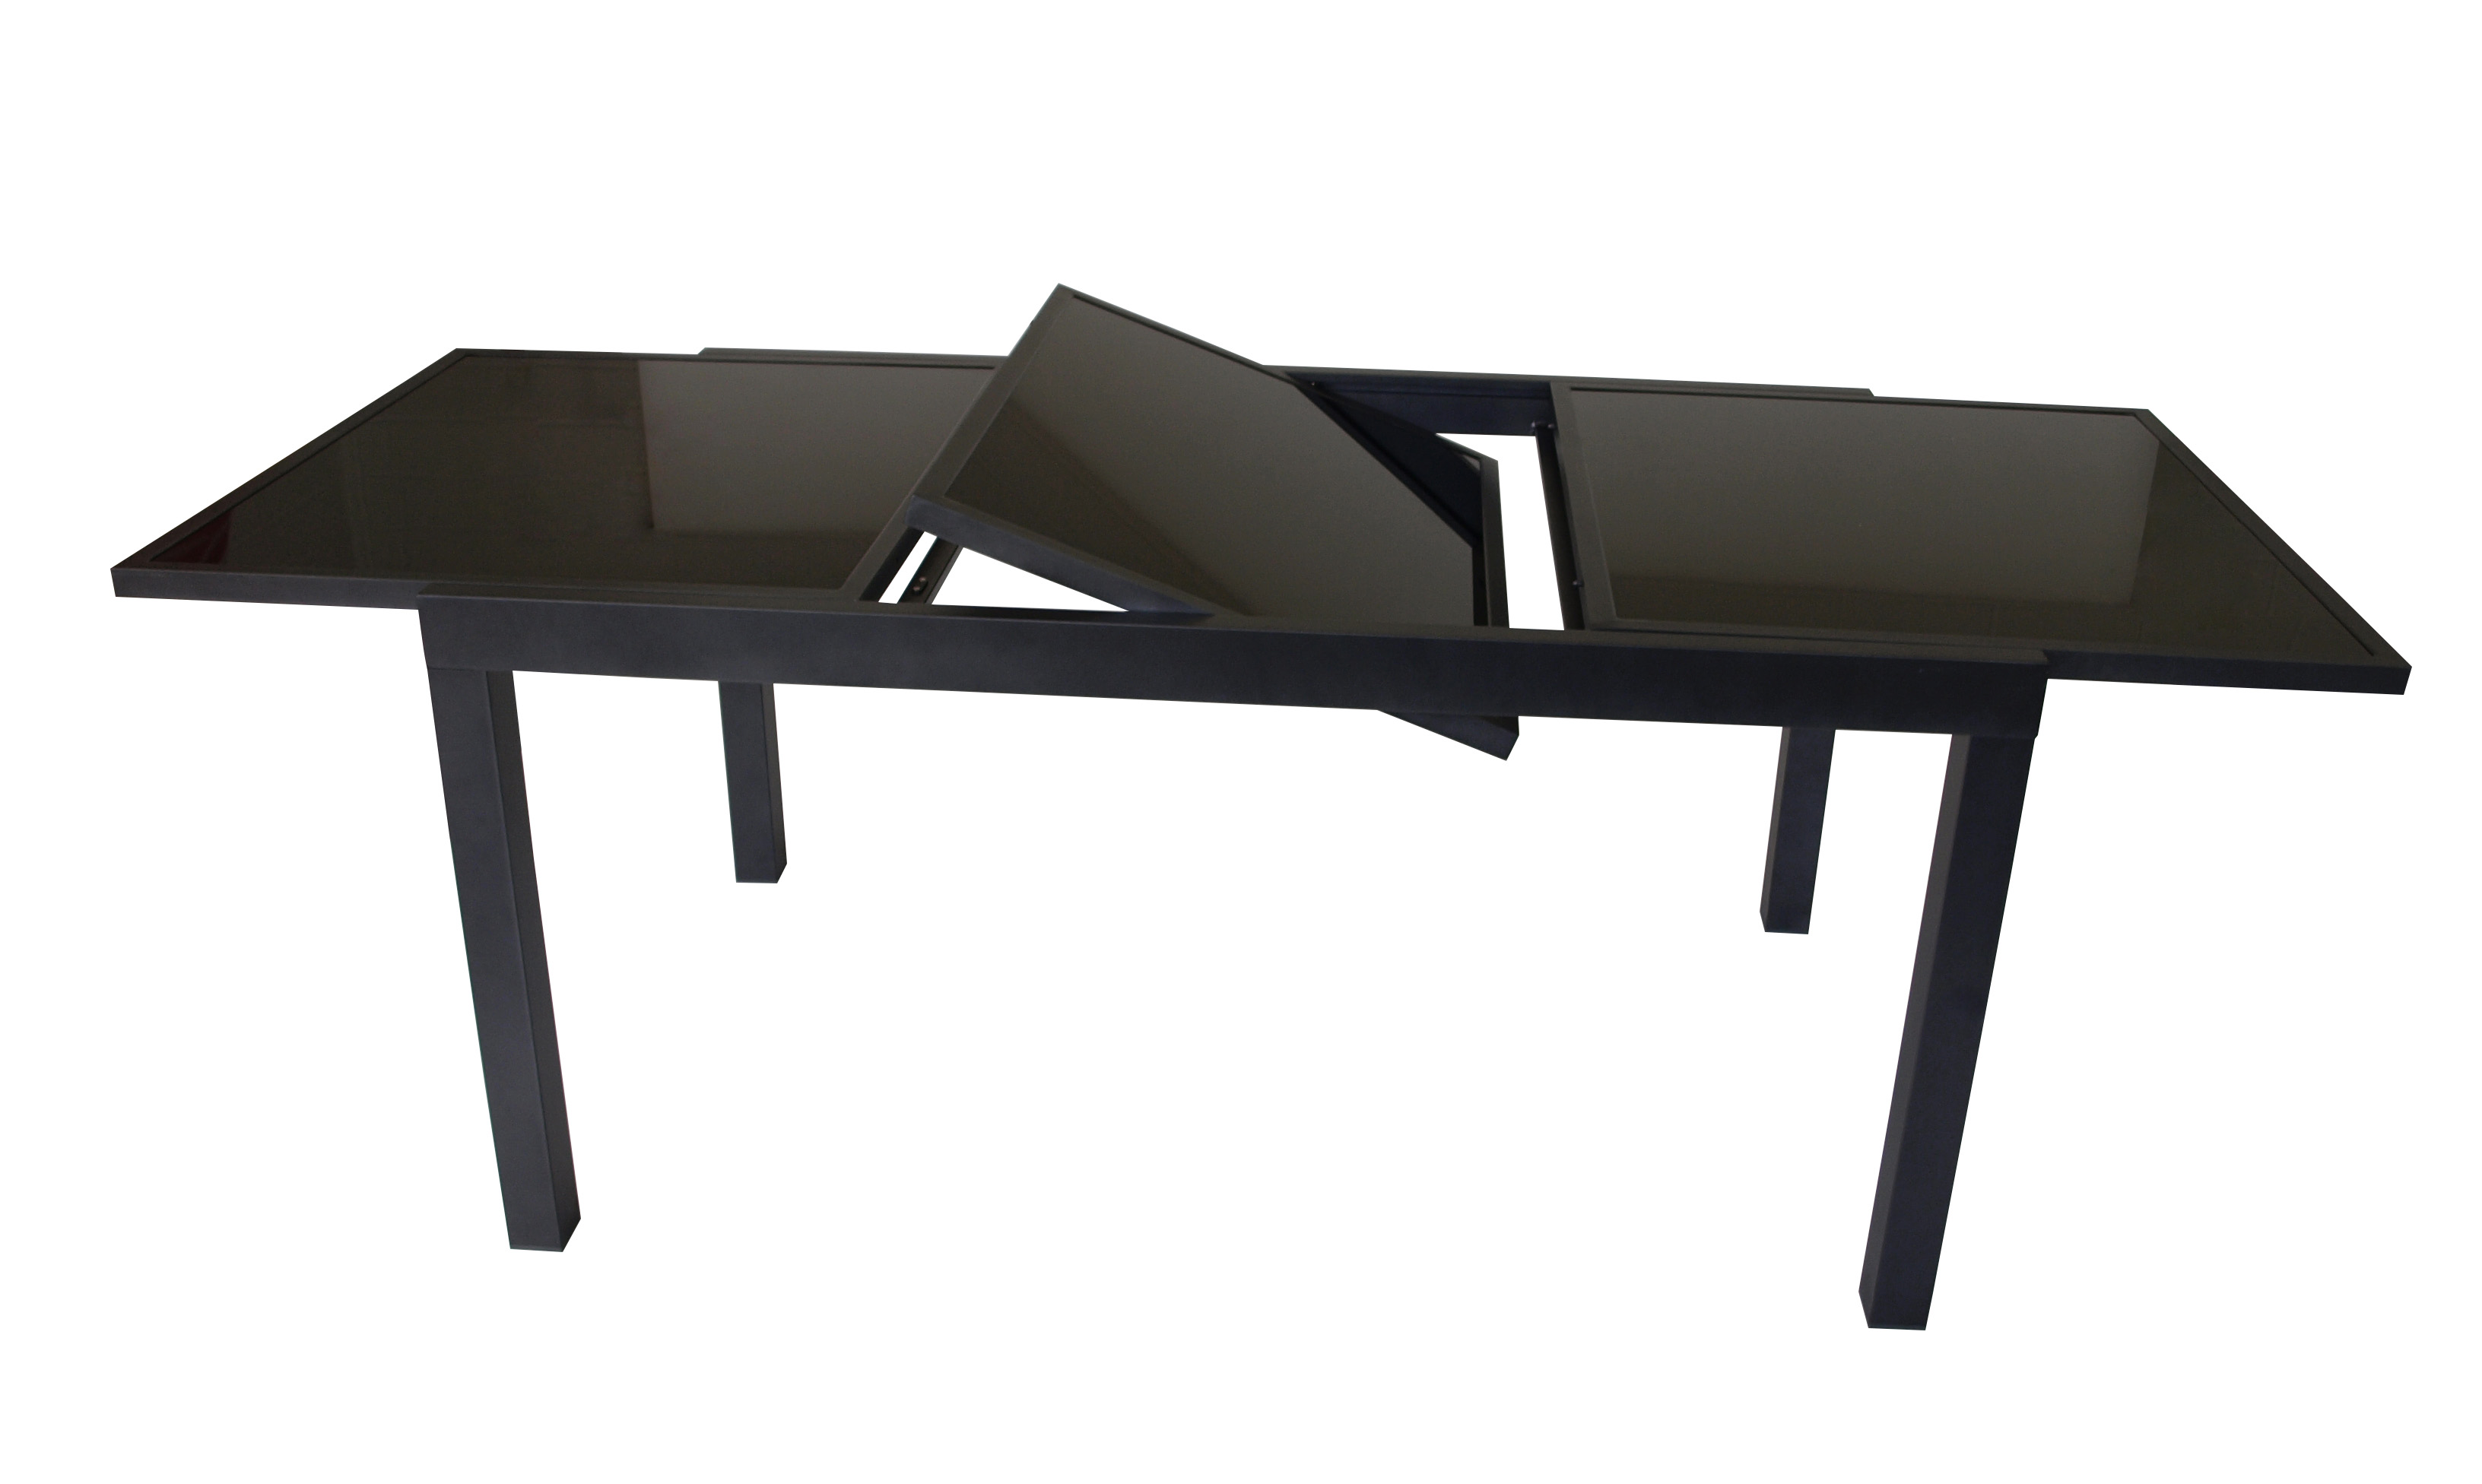 xxl ausziehtisch alutisch torino aus alu glas grau schwarz 150 210x90cm ebay. Black Bedroom Furniture Sets. Home Design Ideas